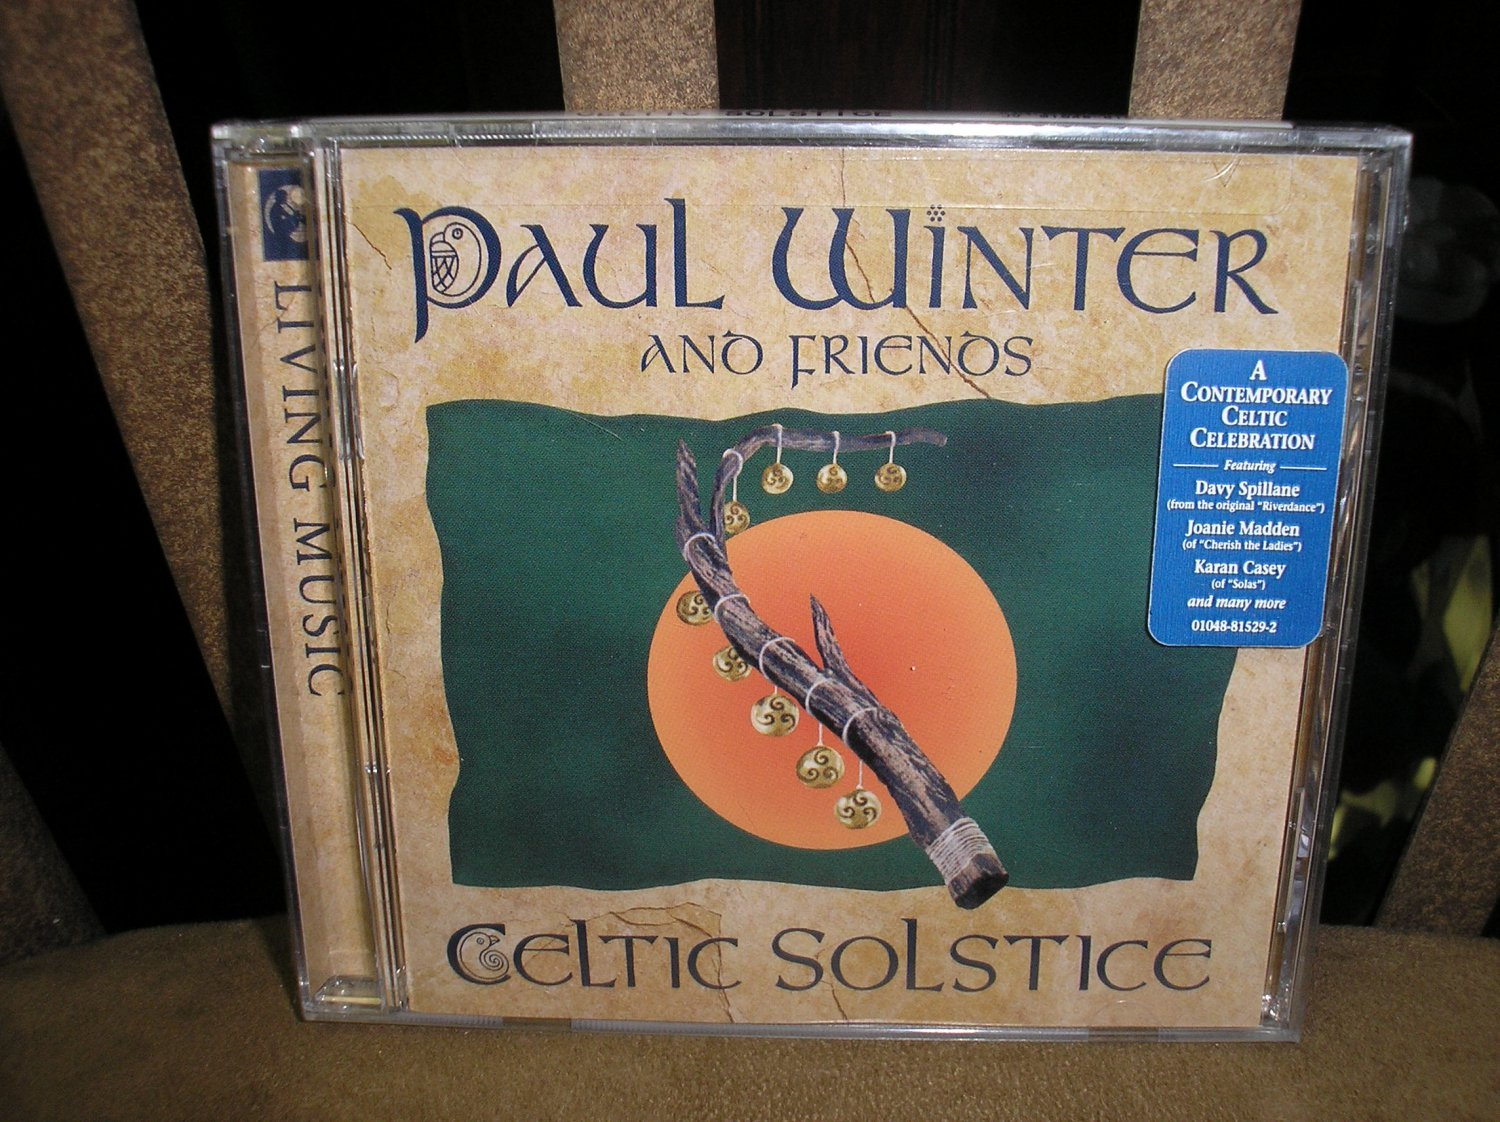 CELTIC SOLSTICE by PAUL WINTER and FRIENDS CD - BRAND NEW in SHRINKWRAP - HAUNTINGLY BEAUTIFUL!